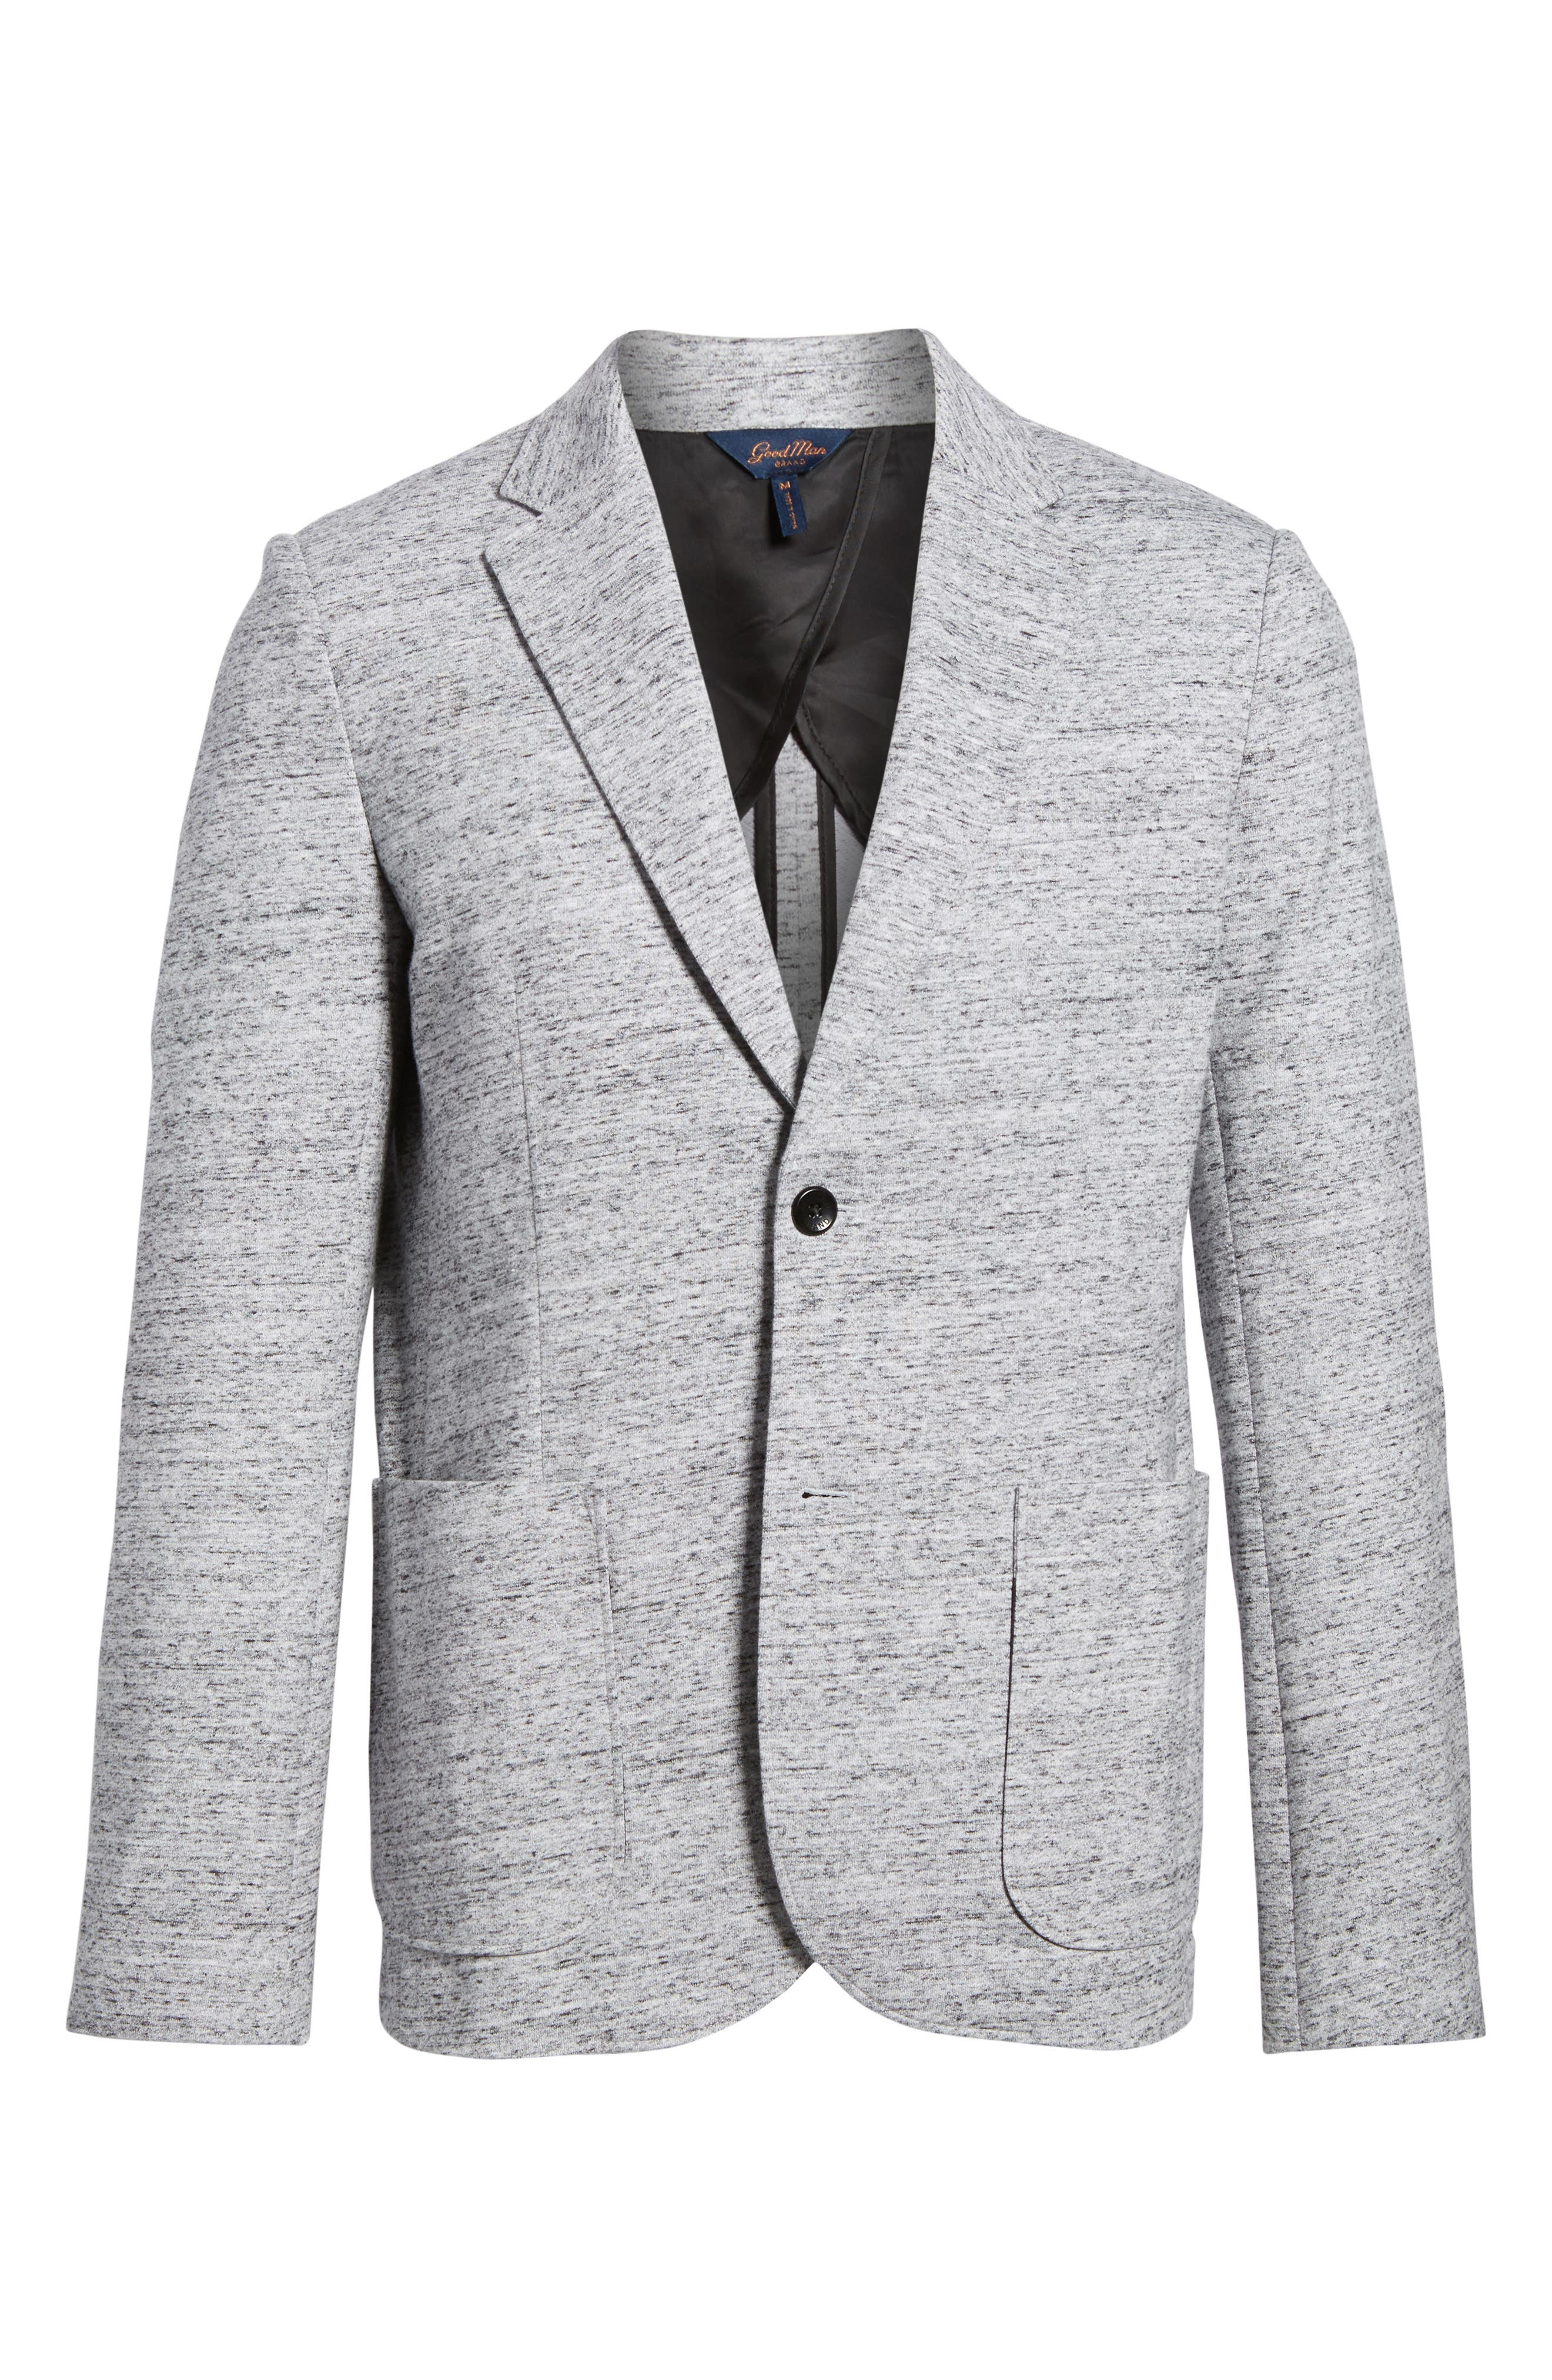 Soft Cotton Unconstructed Blazer,                             Alternate thumbnail 6, color,                             Grey Heather / White